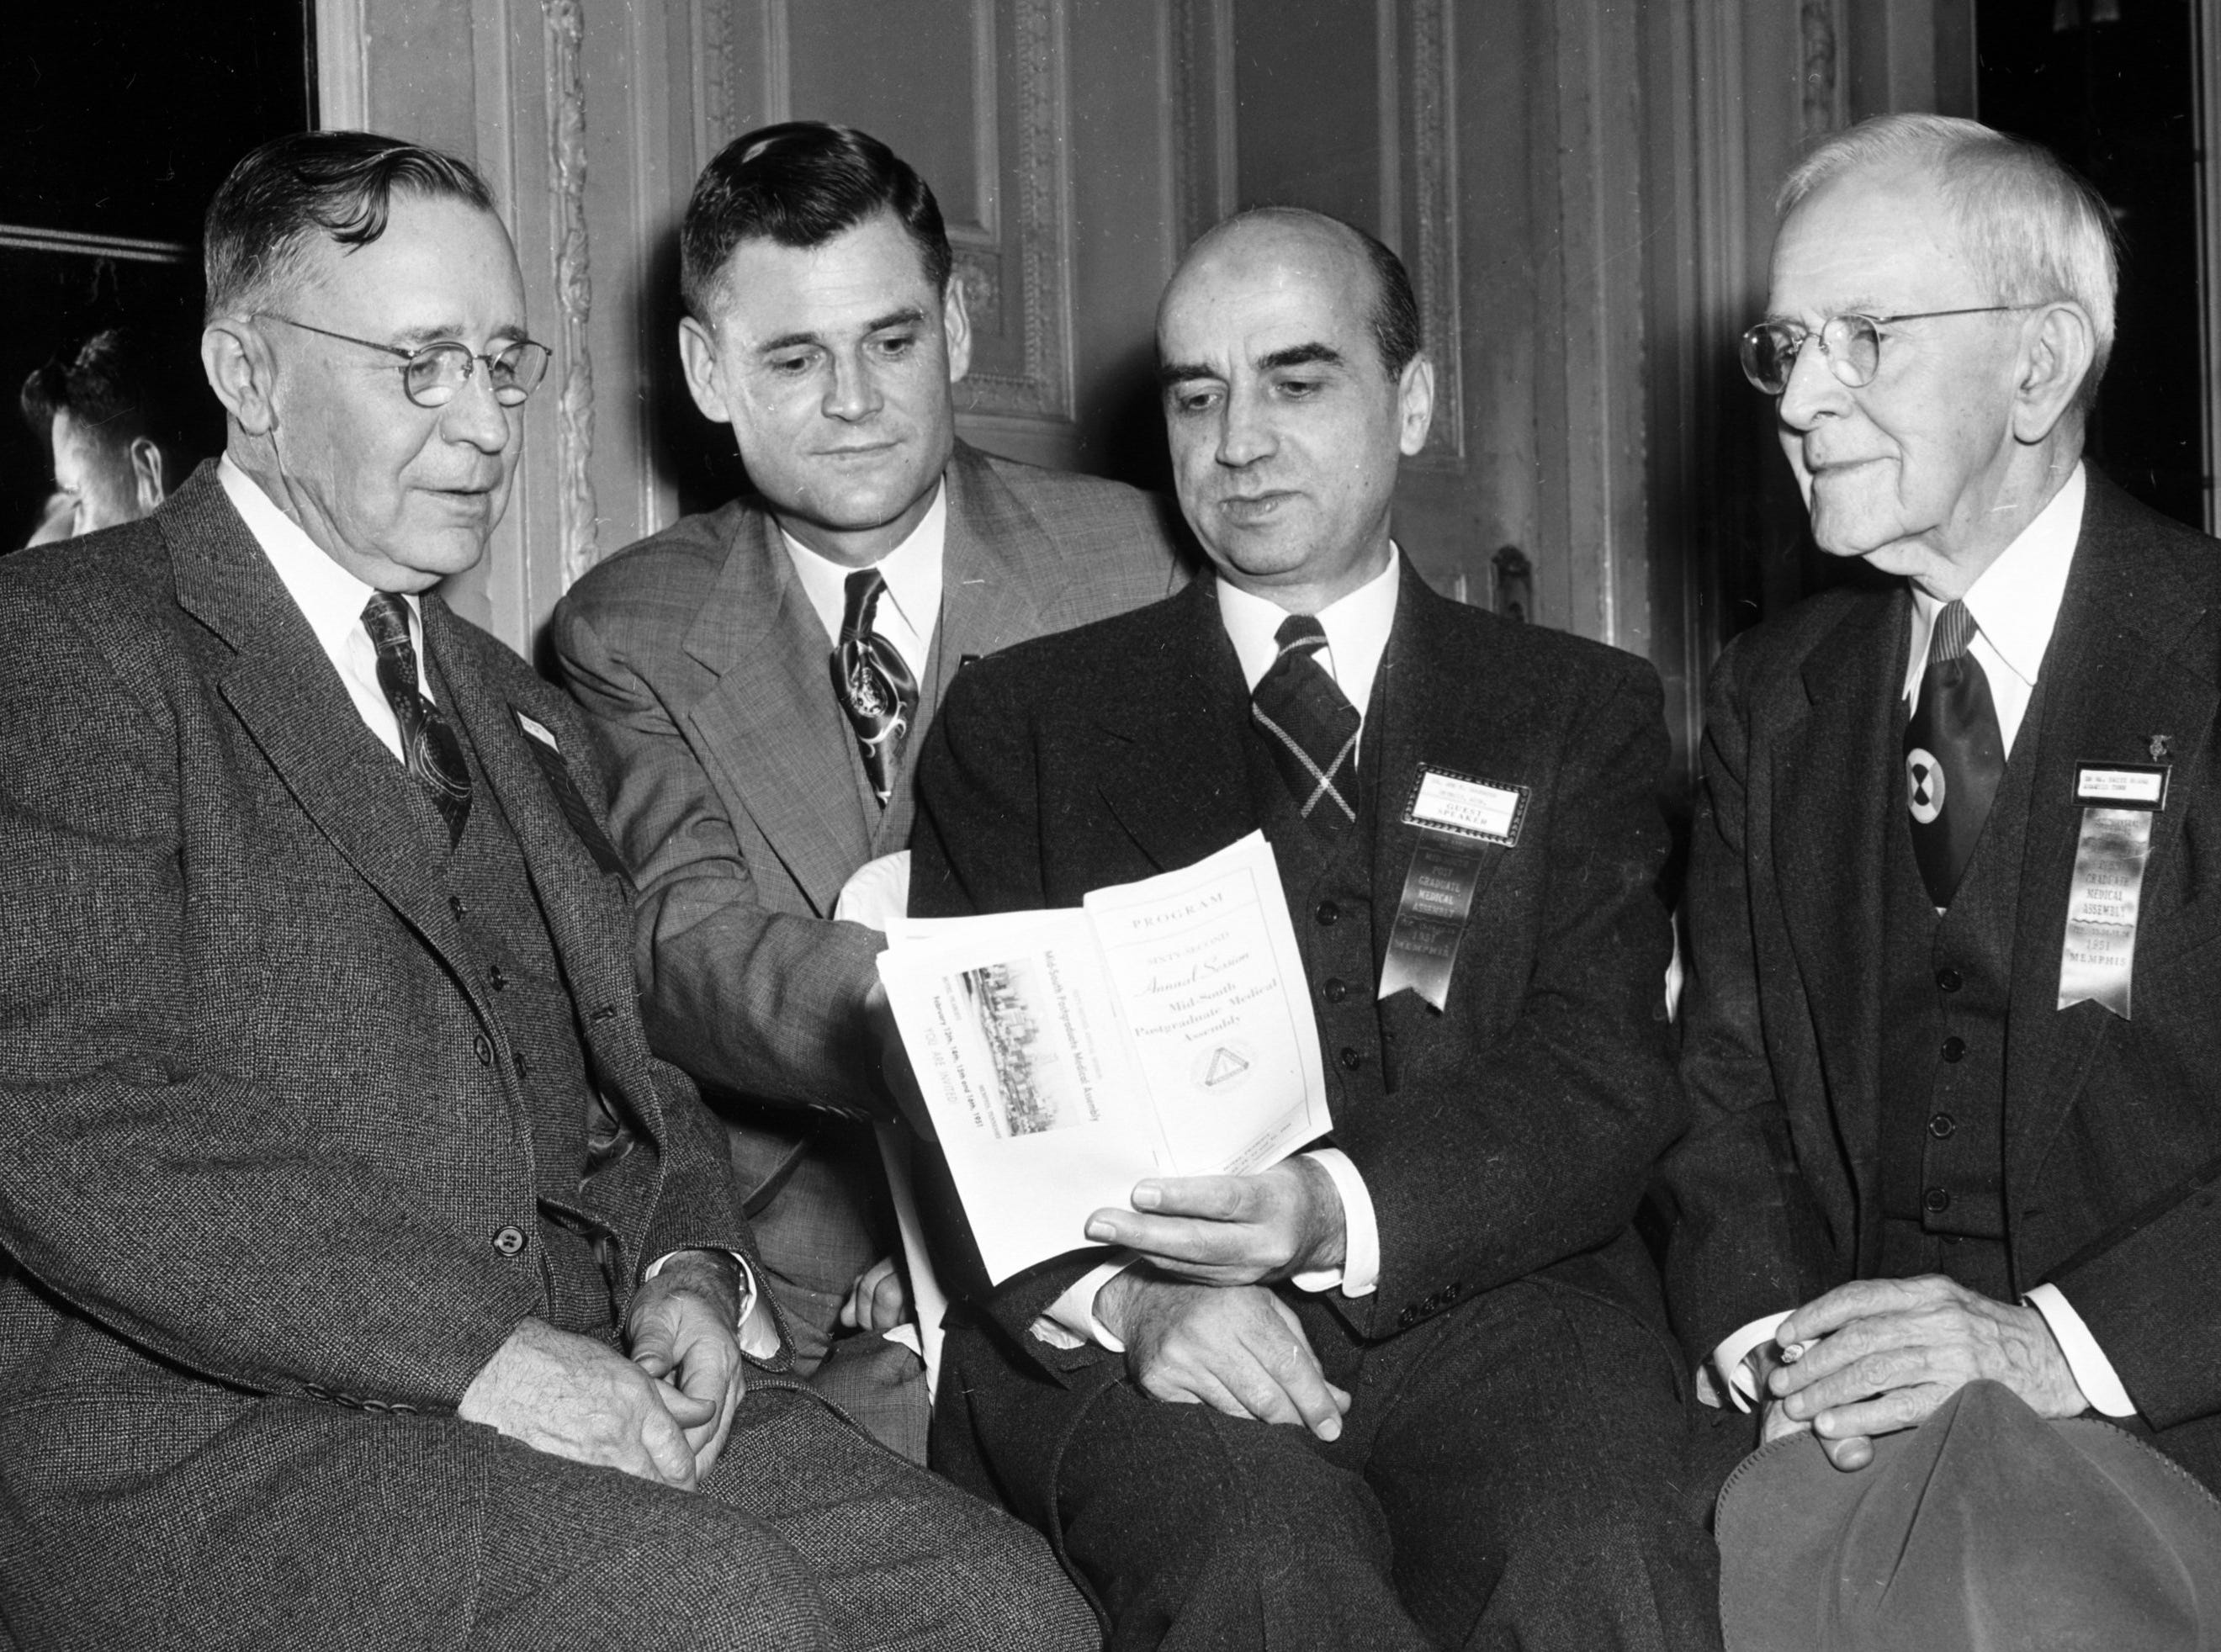 Dr. Ben E. Goodrich (Second Right) dealt with clinical problems related to high blood pressure within the lungs on 13 Feb 1951 in his talk before the Mid-South Post-Graduate Medical Assembly.  Discussing his paper with him are Dr. N.B. Ellis (Left) of Wilson, AR; Dr. W.H. Lunceford (Second Left) of Sardis, MS and Dr. William Britt Burns (Right) of Memphis.  Dr. Burns was vice president of the old Tri-State Medical Assembly in 1898, which preceded the present organization.  He maintains he hasn't missed a single meeting throughout the years.